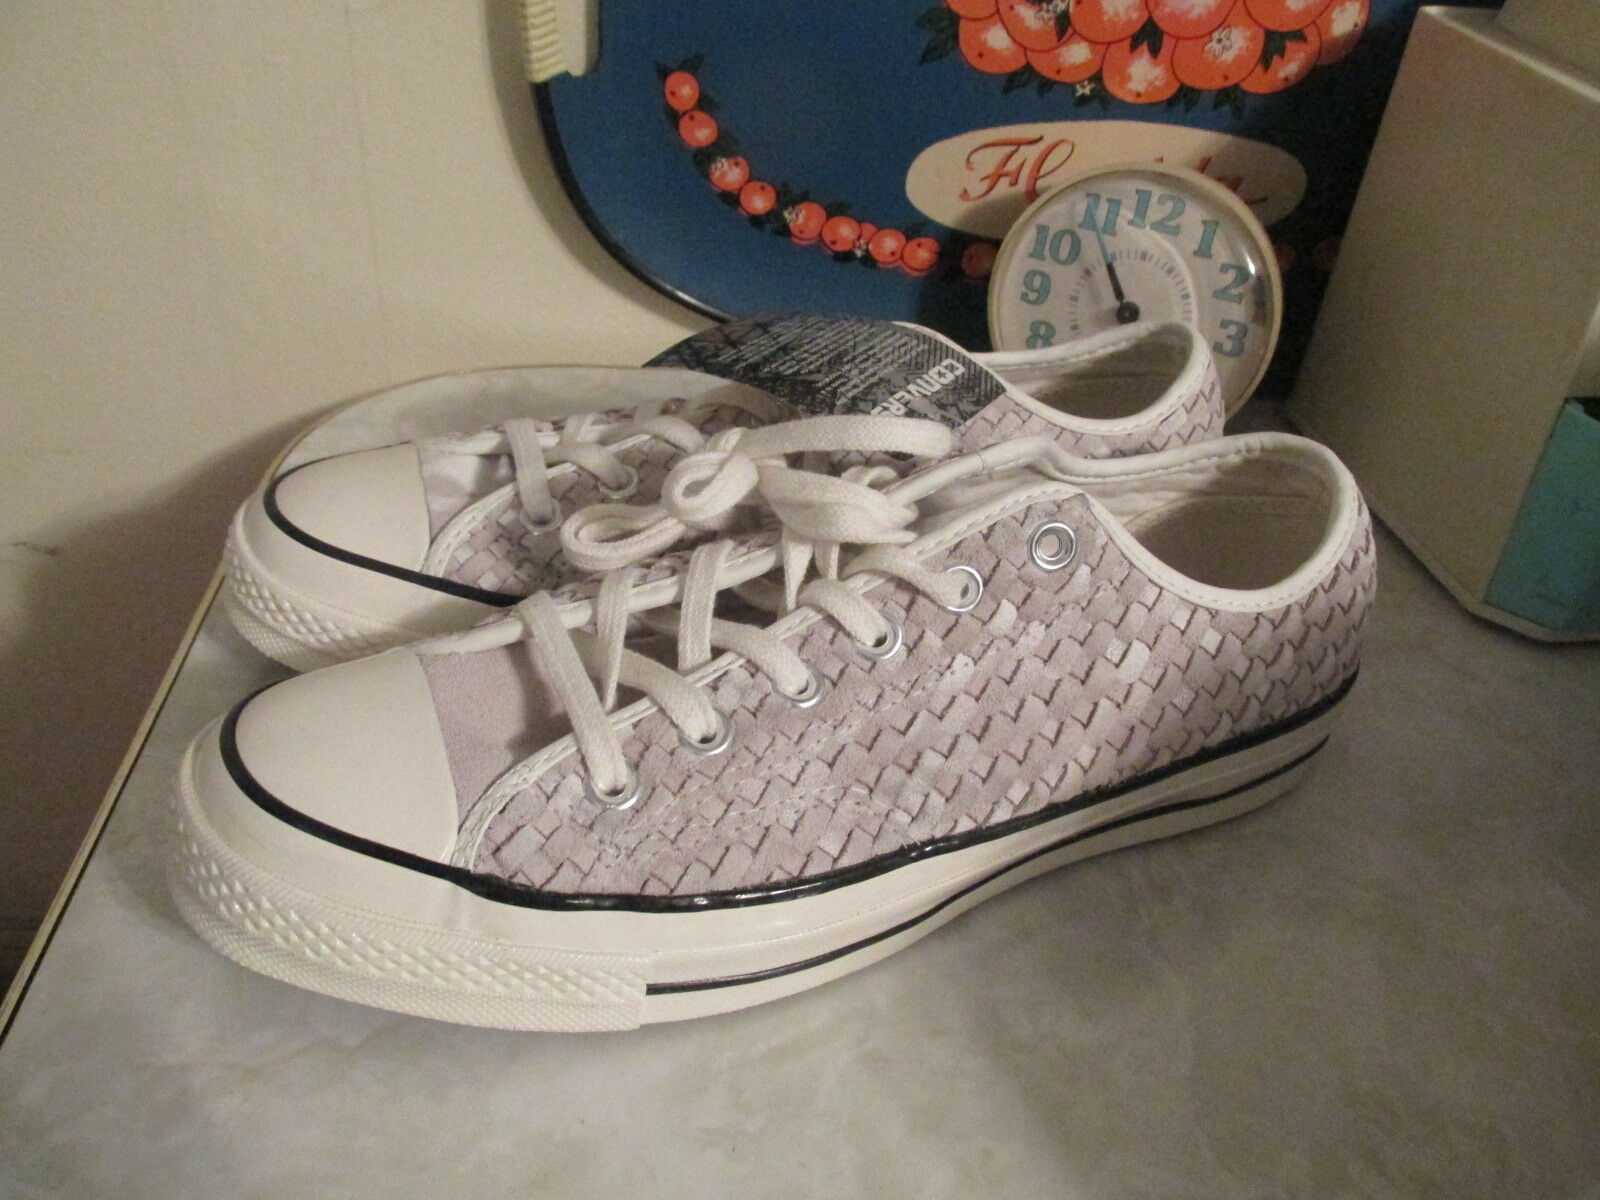 CONVERSE CHUCK TAYLOR ALL STAR '70 WOVEN SUEDE LO SNEAKERS SIZE MEN 9 W 11